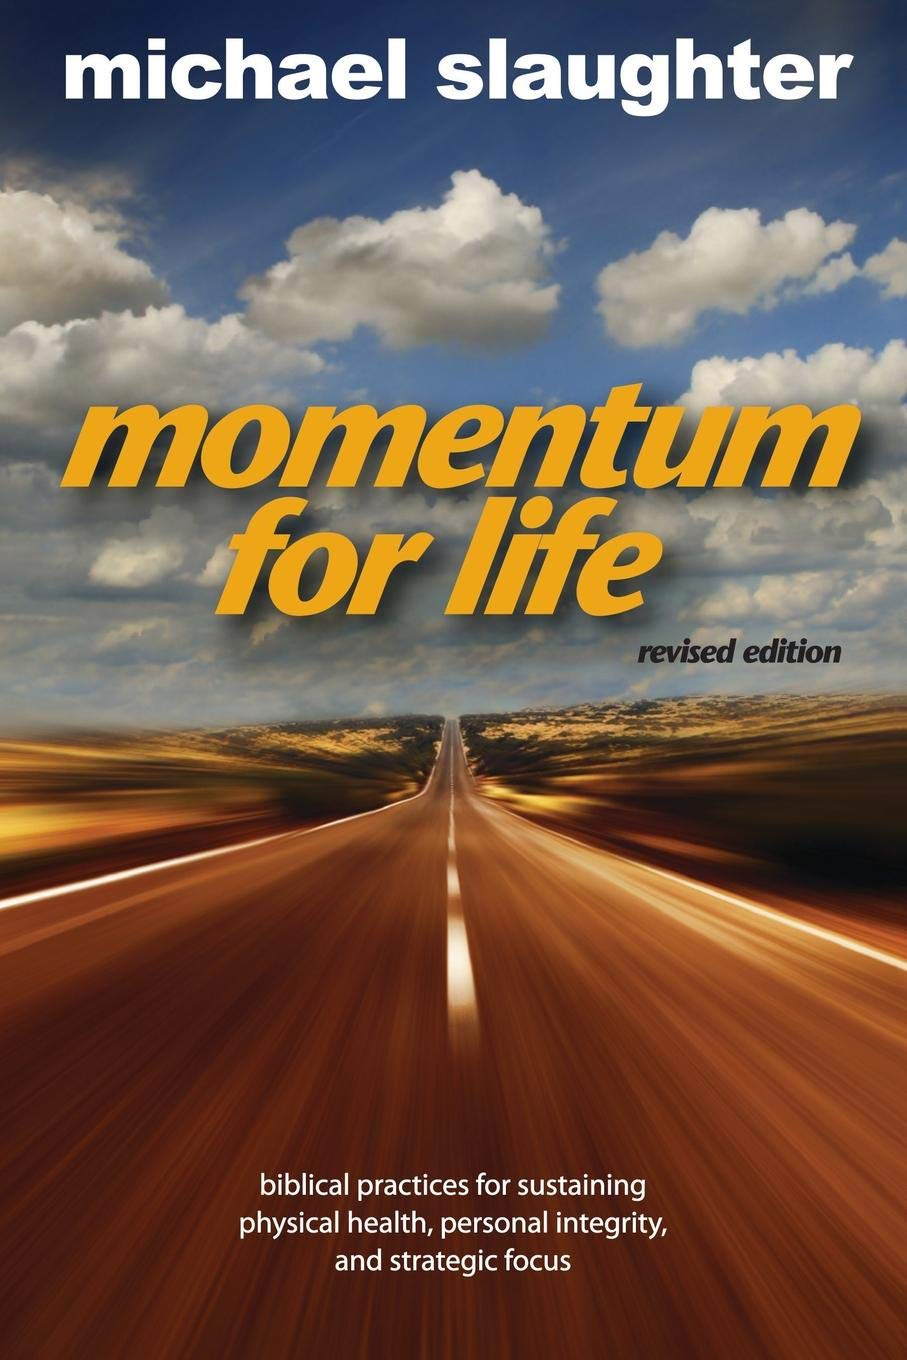 Momentum for Life, Revised Edition: Biblical Practices for Sustaining  Physical Health, Personal Integrity, and Strategic Focus Paperback – April  1, 2008